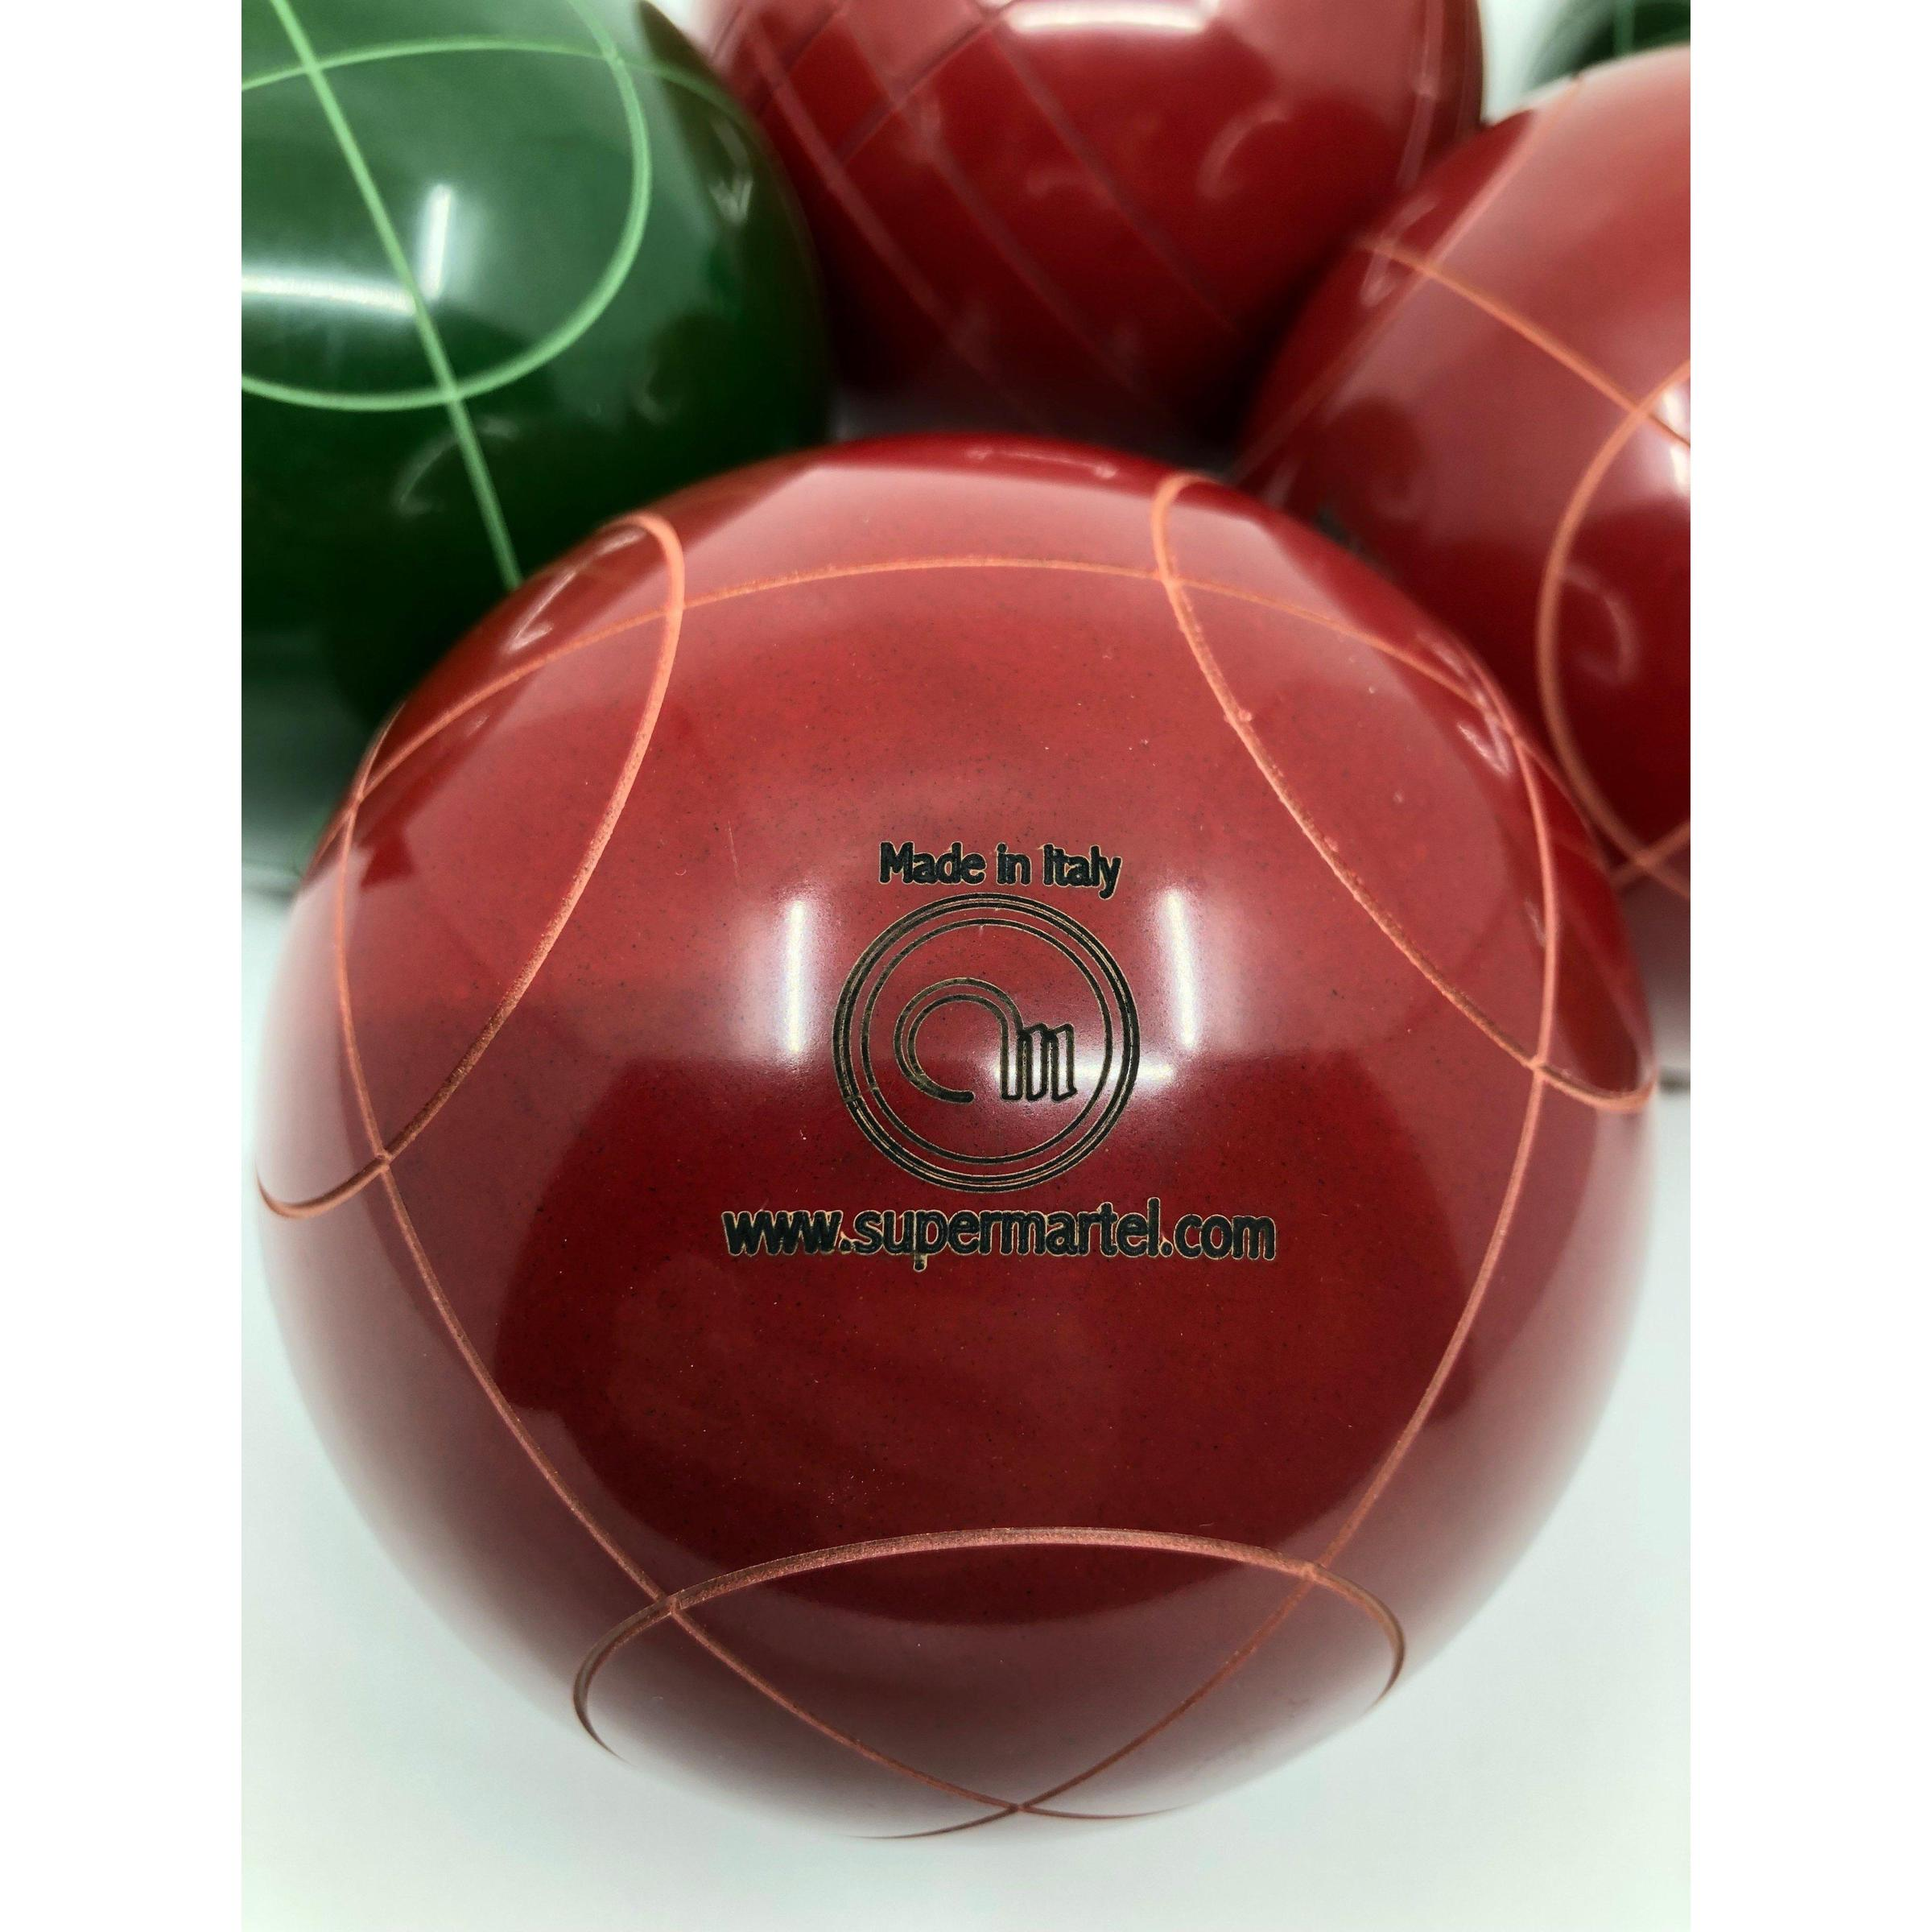 Super Martel Professional Bocce Ball Set 107mm Tournament Rated - Made in Italy